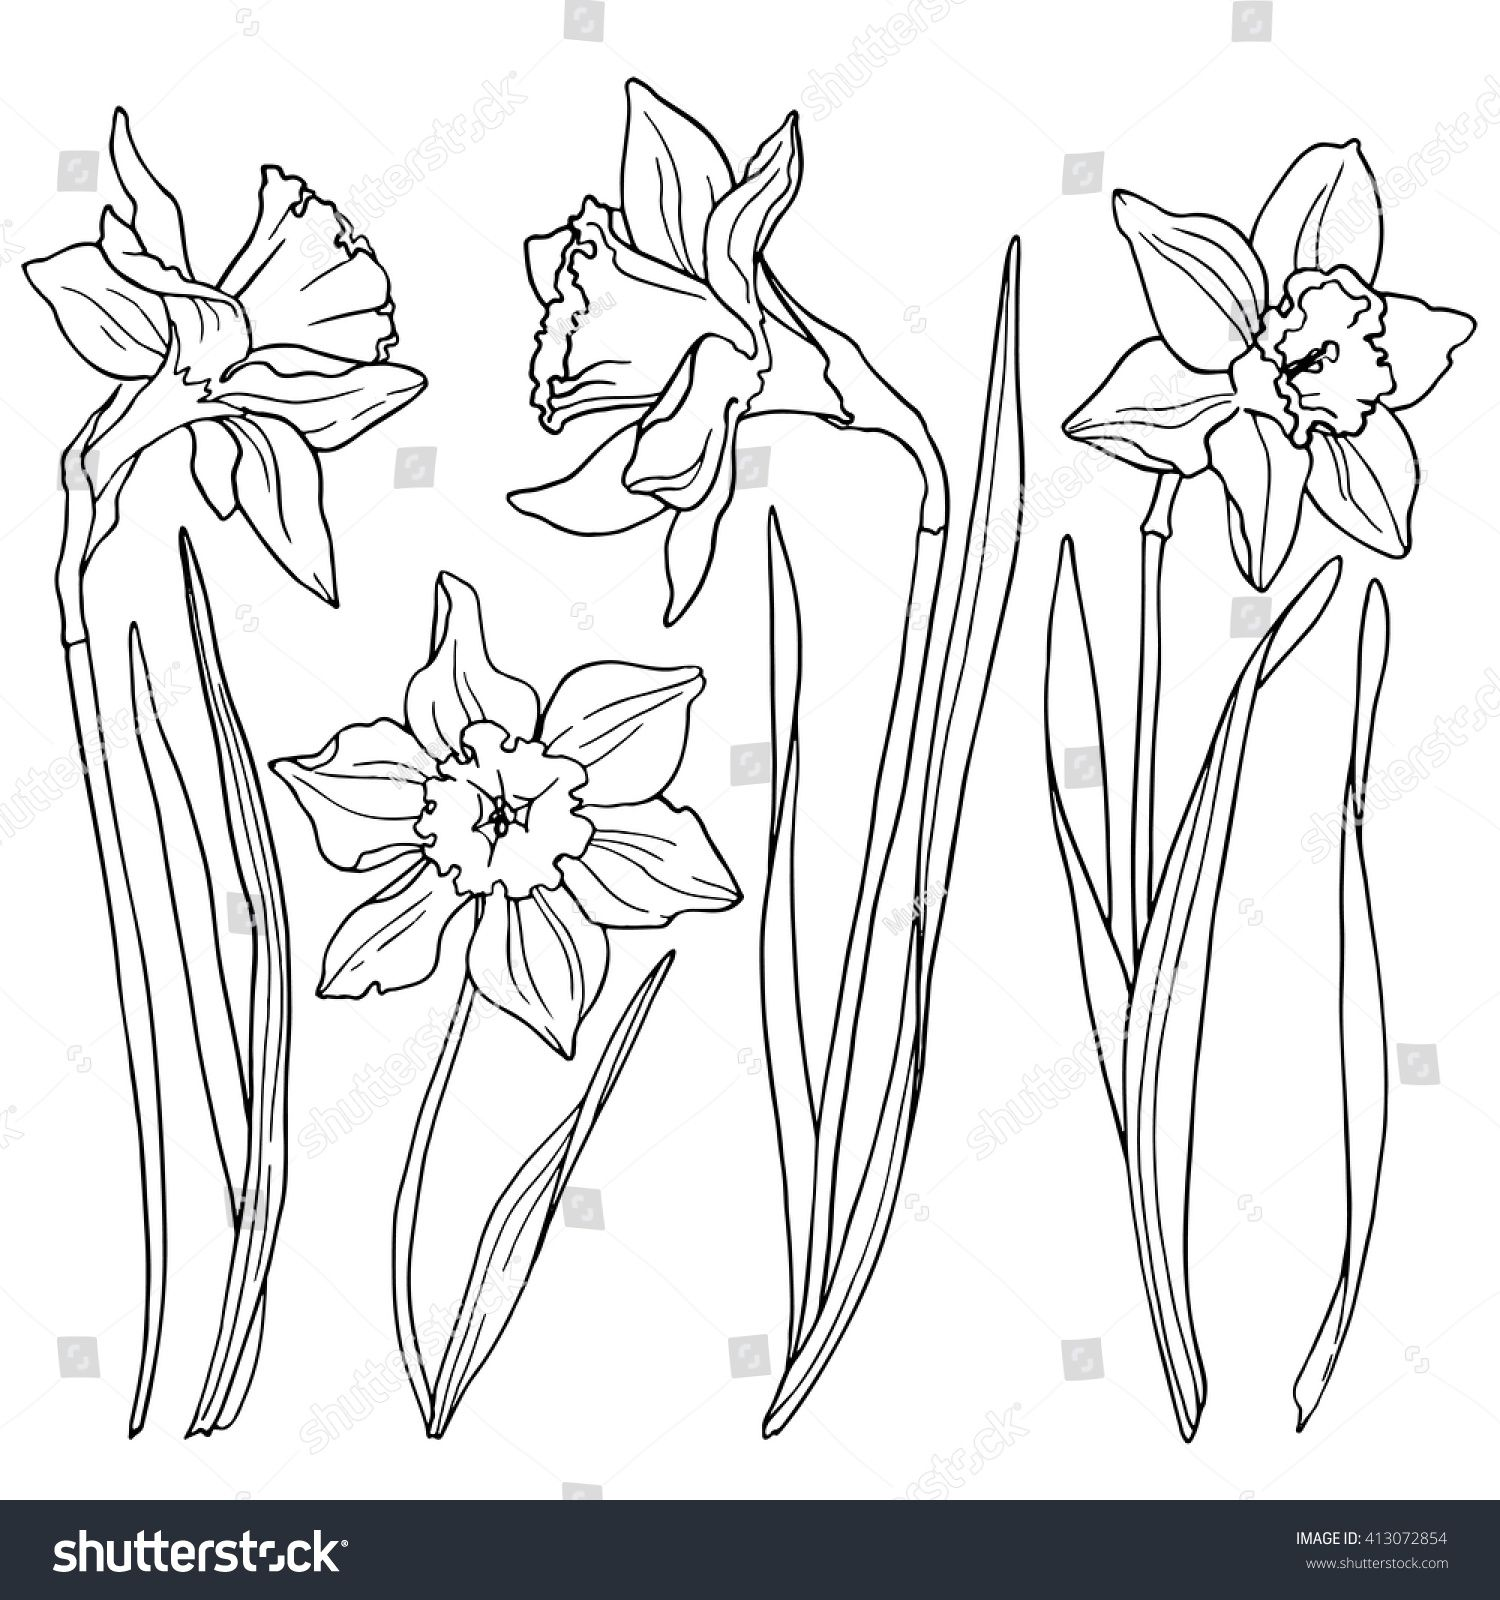 Daffodils Line Drawings Of Flowers Flower Drawing Flower Line Drawings Flower Sketches